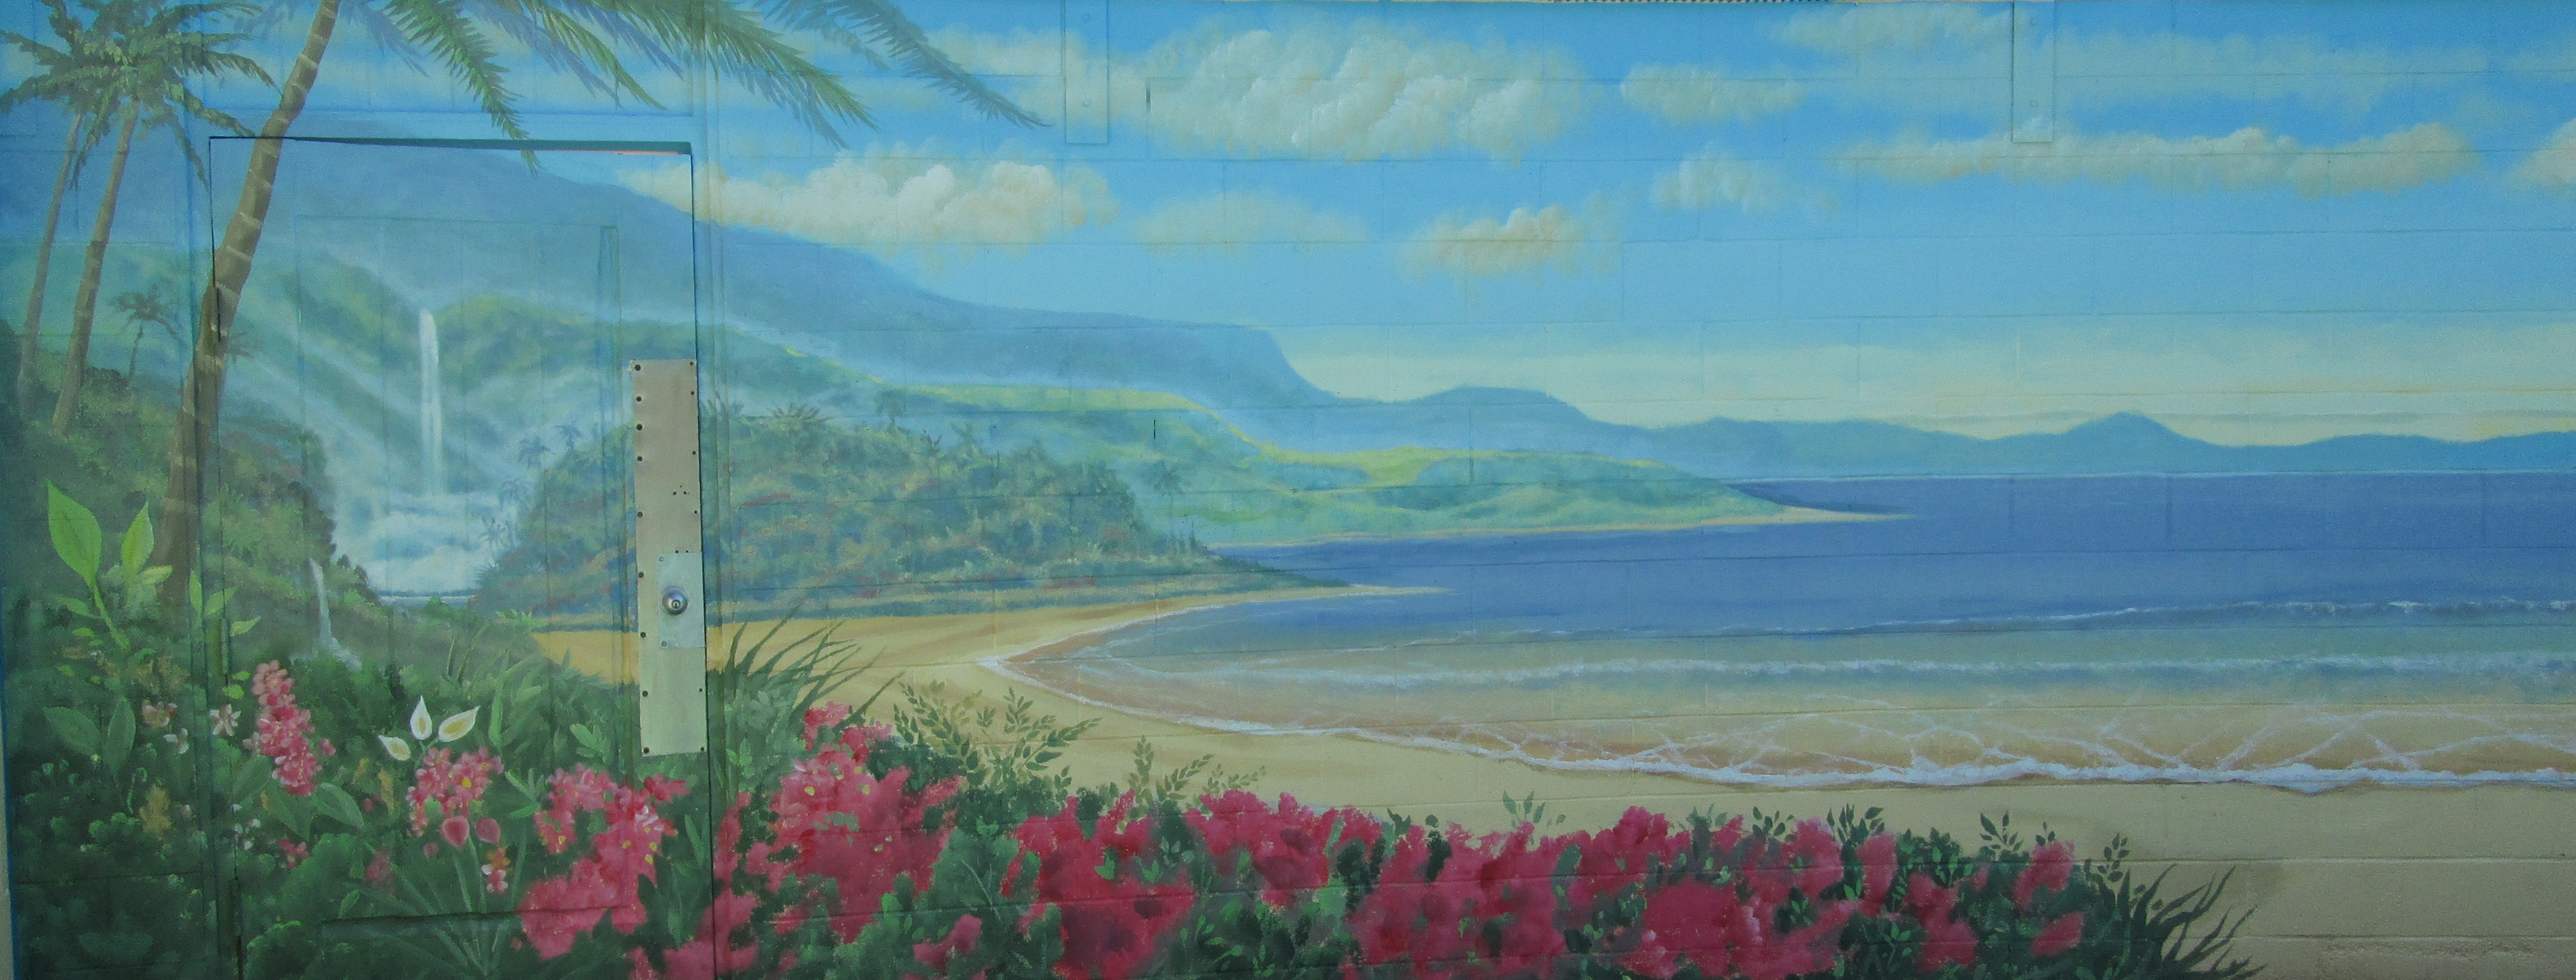 Commercial Public Murals Beach scene mural painted in San Diego by Rik Erickson of Murals Fantastic